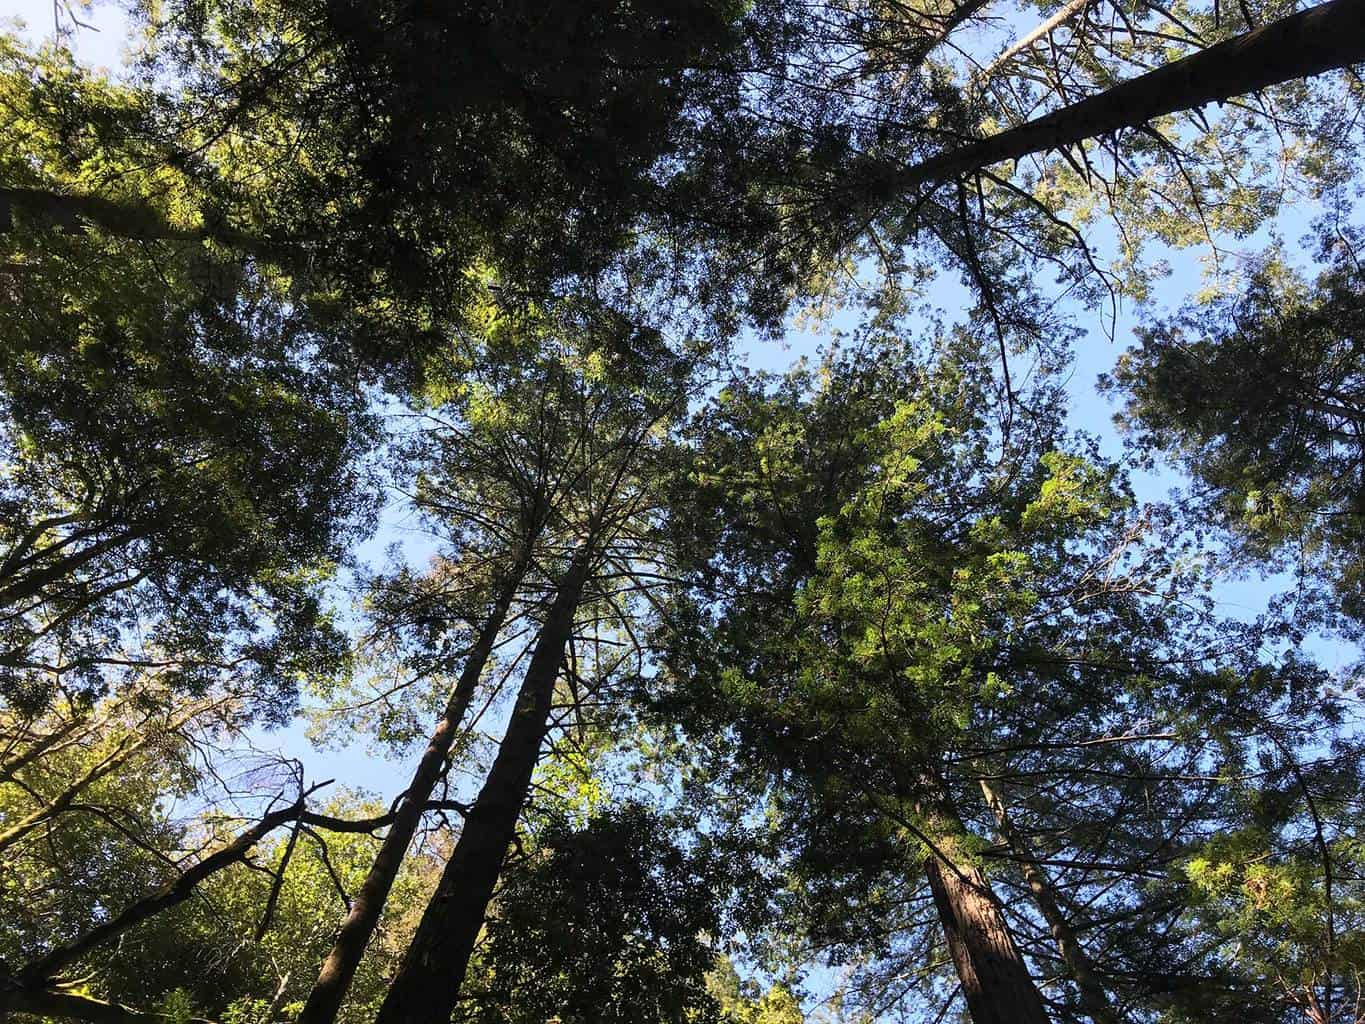 rincon-hiking-trail-santa-cruz-redwoods-hiking-trail-1